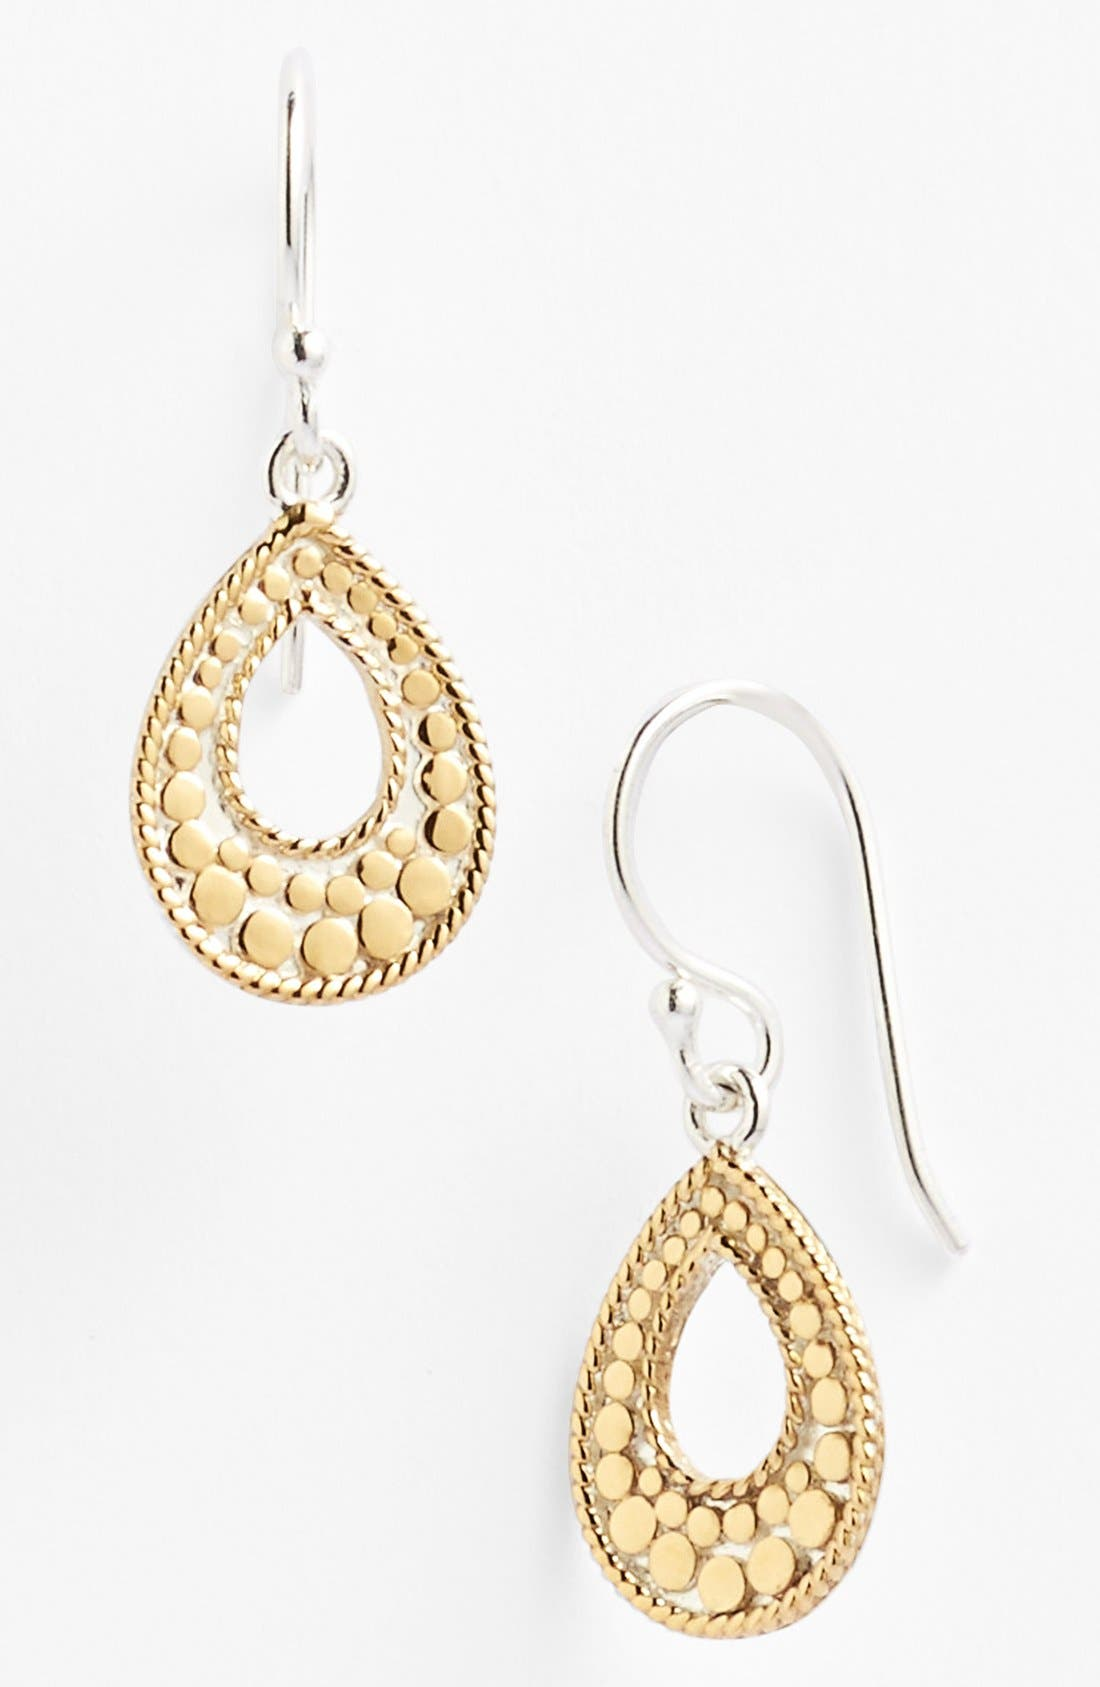 Alternate Image 1 Selected - Anna Beck 'Timor' Small Teardrop Earrings